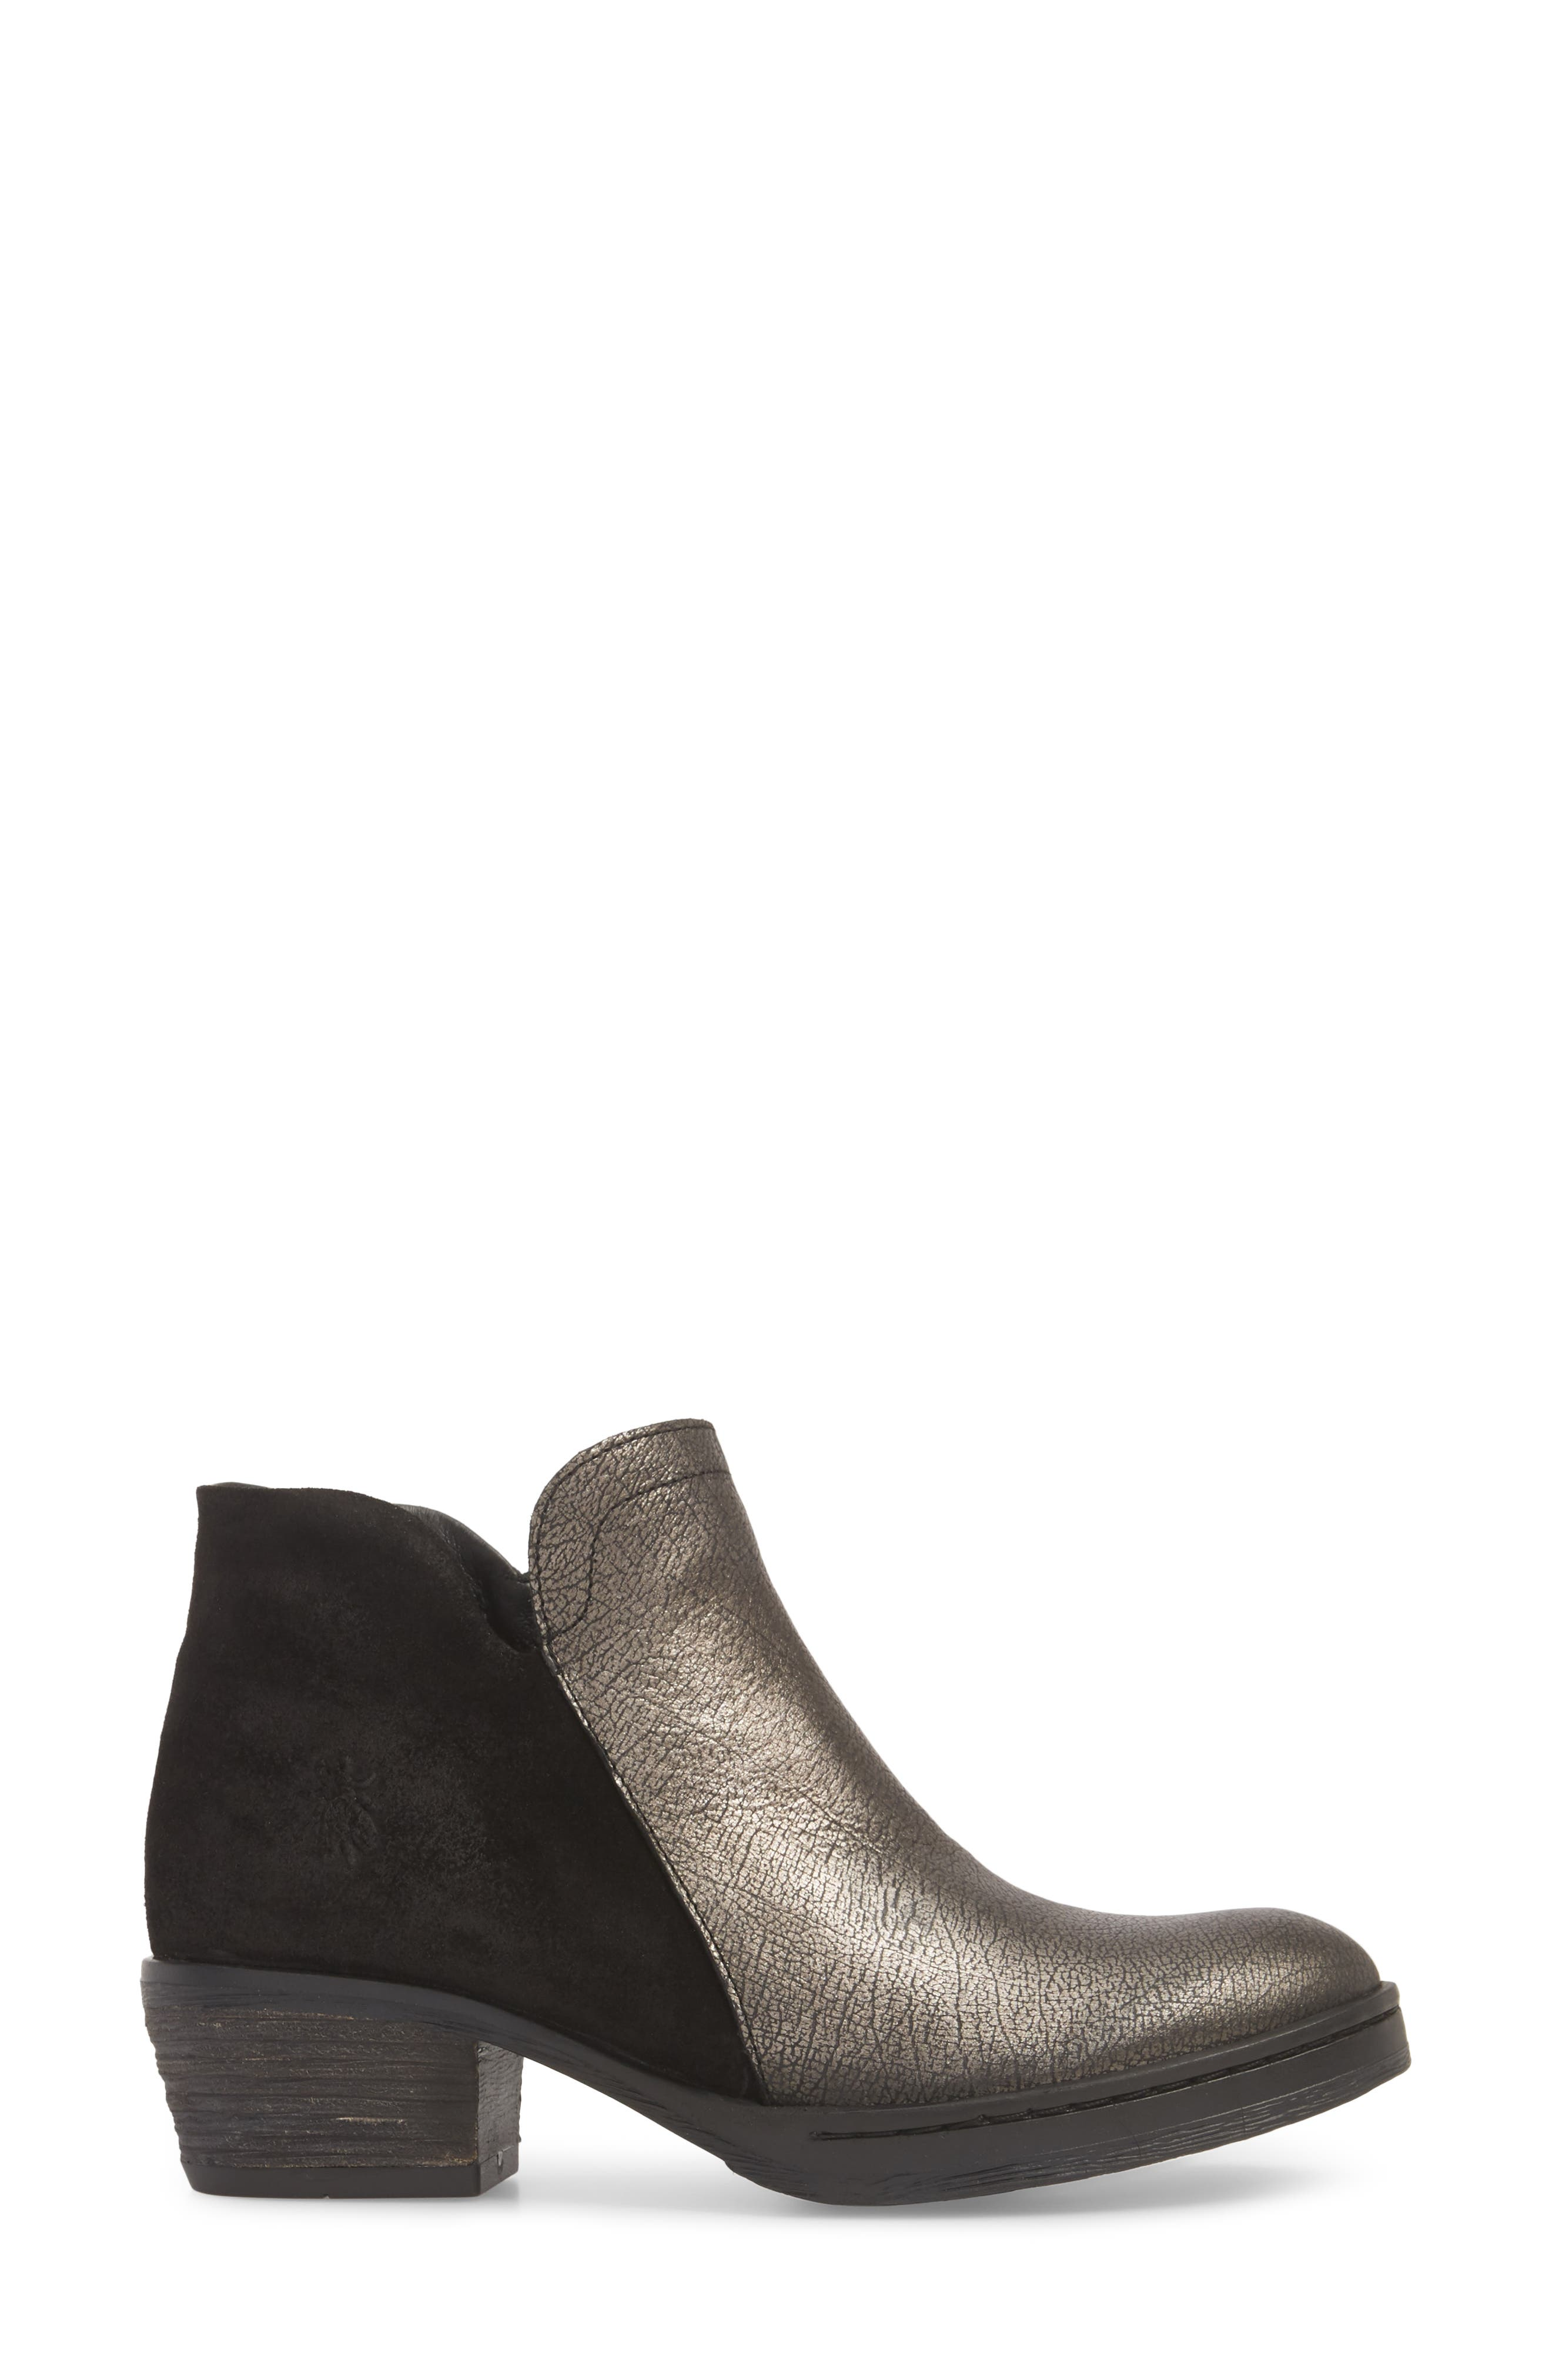 Cled Bootie,                             Alternate thumbnail 3, color,                             BLACK/ SILVER OIL LEATHER